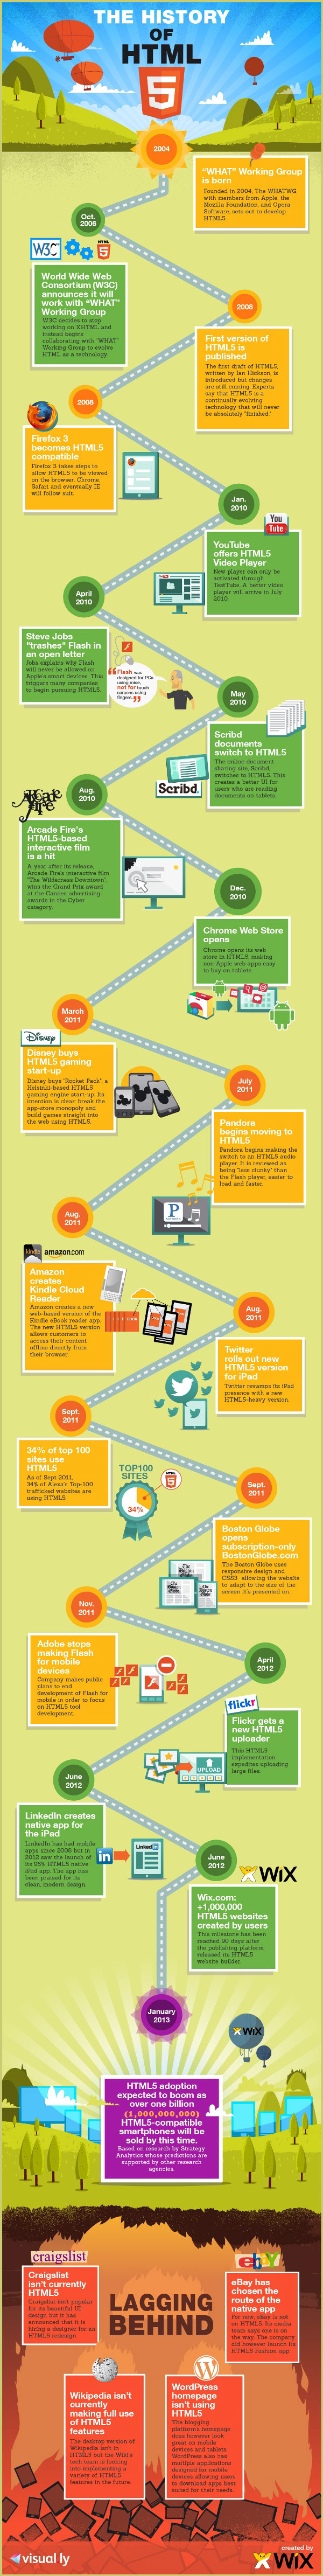 Html5 History-infographic